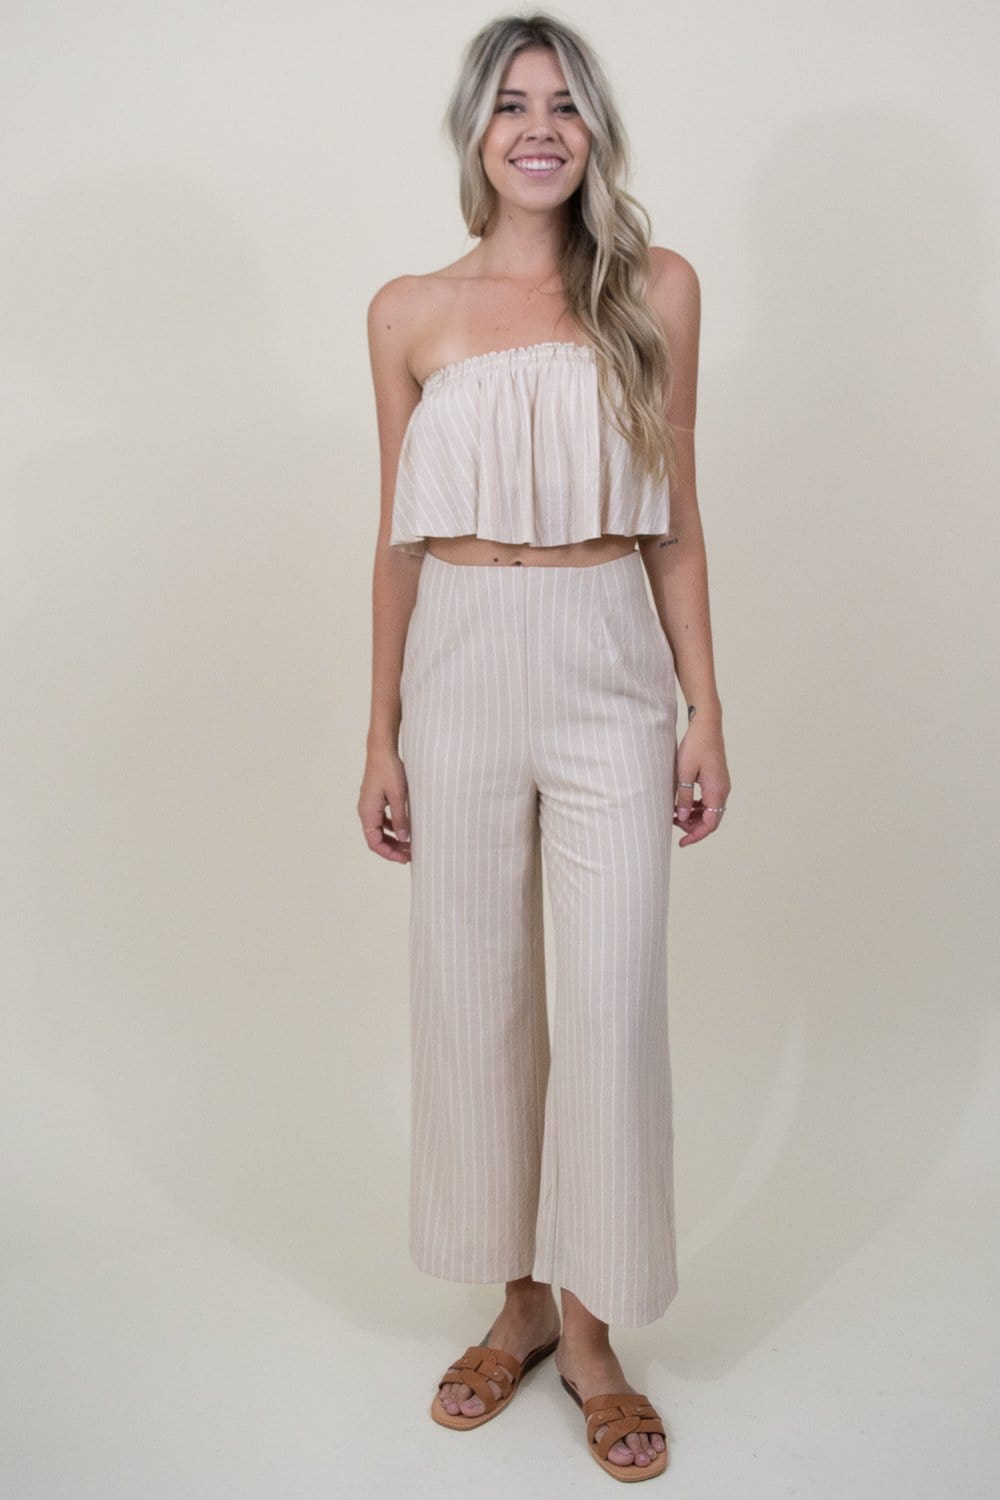 Sage The Label Wild One Pant in Sand Stripe